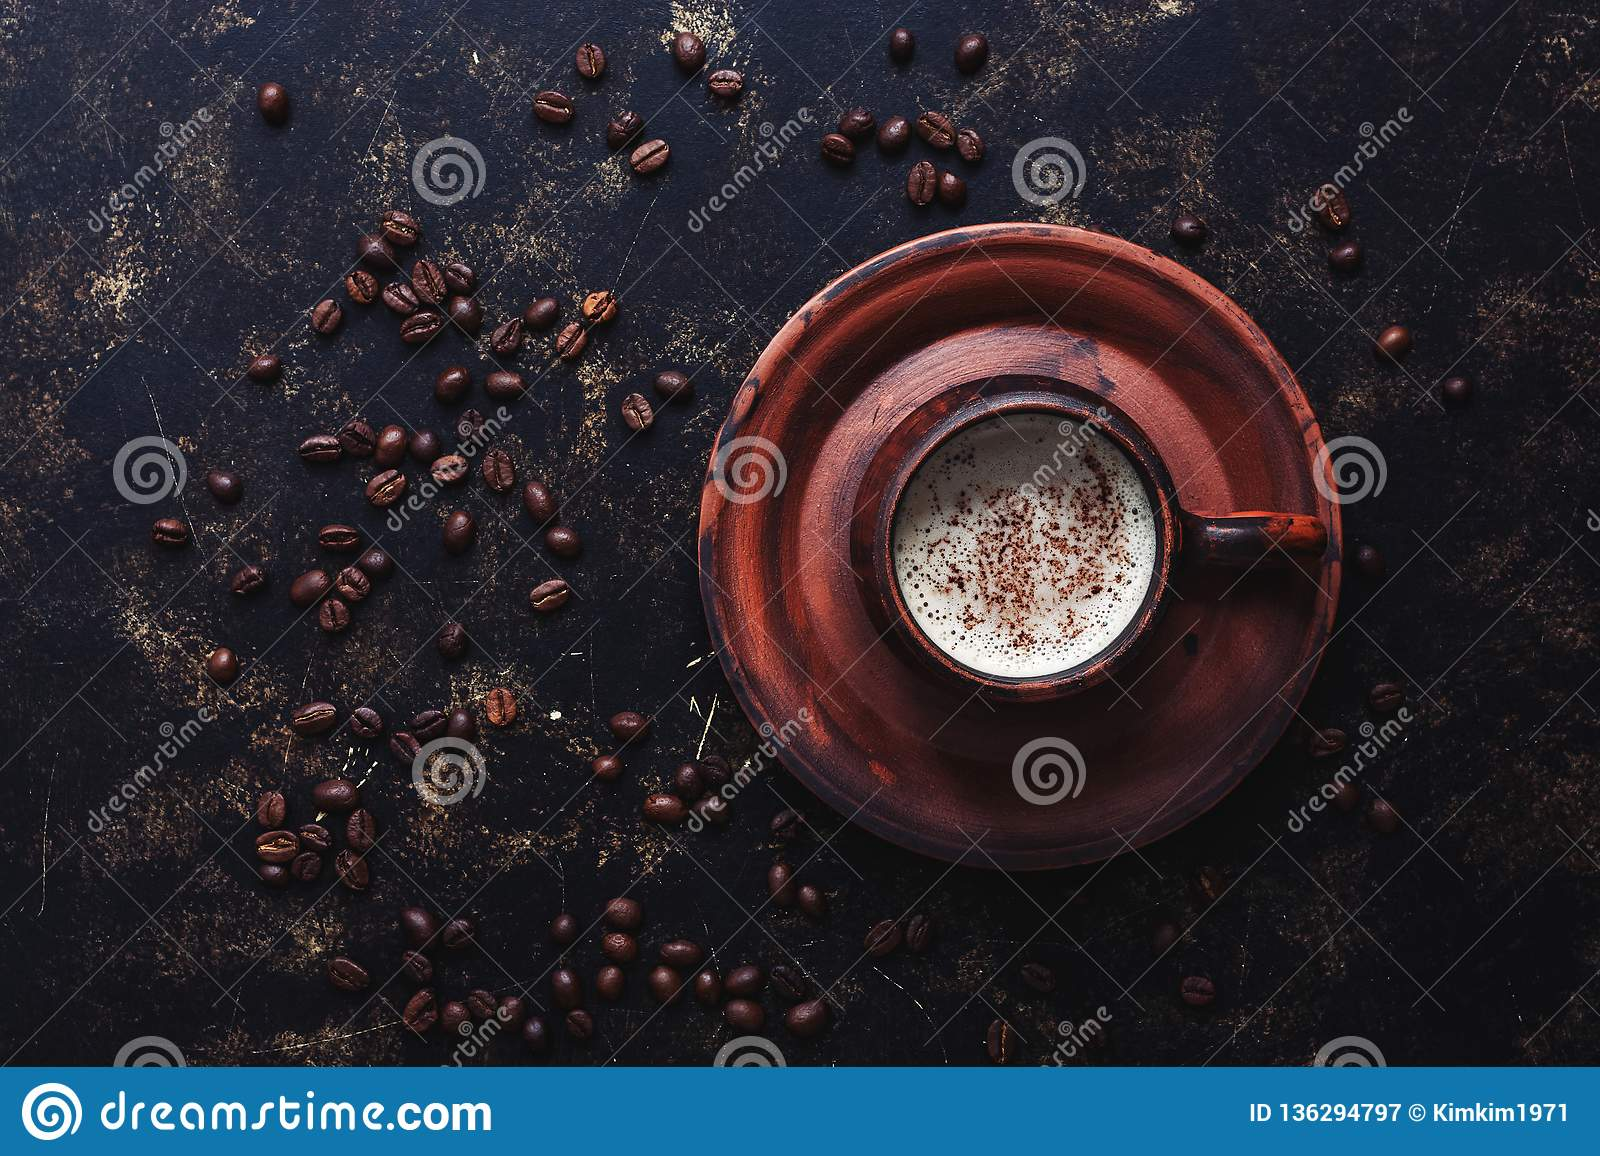 Coffee in a vintage brown ceramic cup on a dark grunge background with roasted coffee beans. Top view, copy space